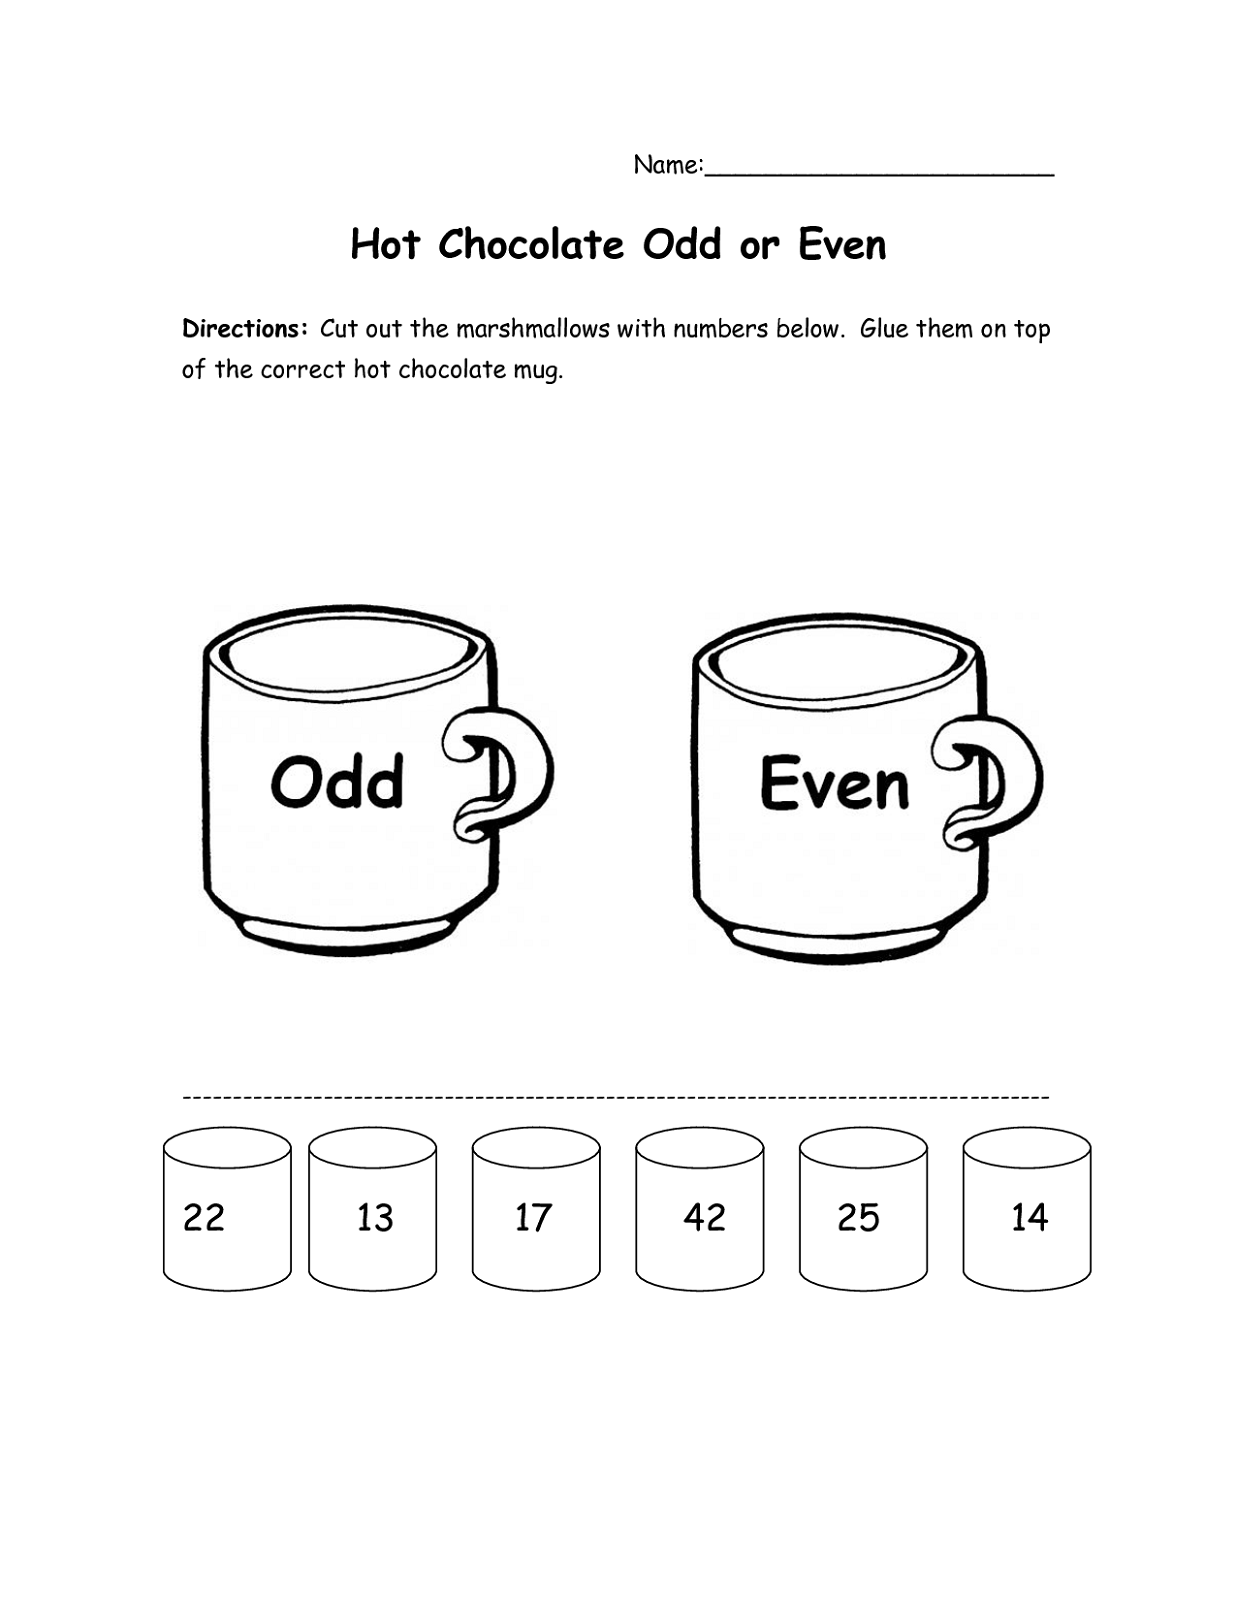 odd-and-even-numbers-worksheets-marshmallow